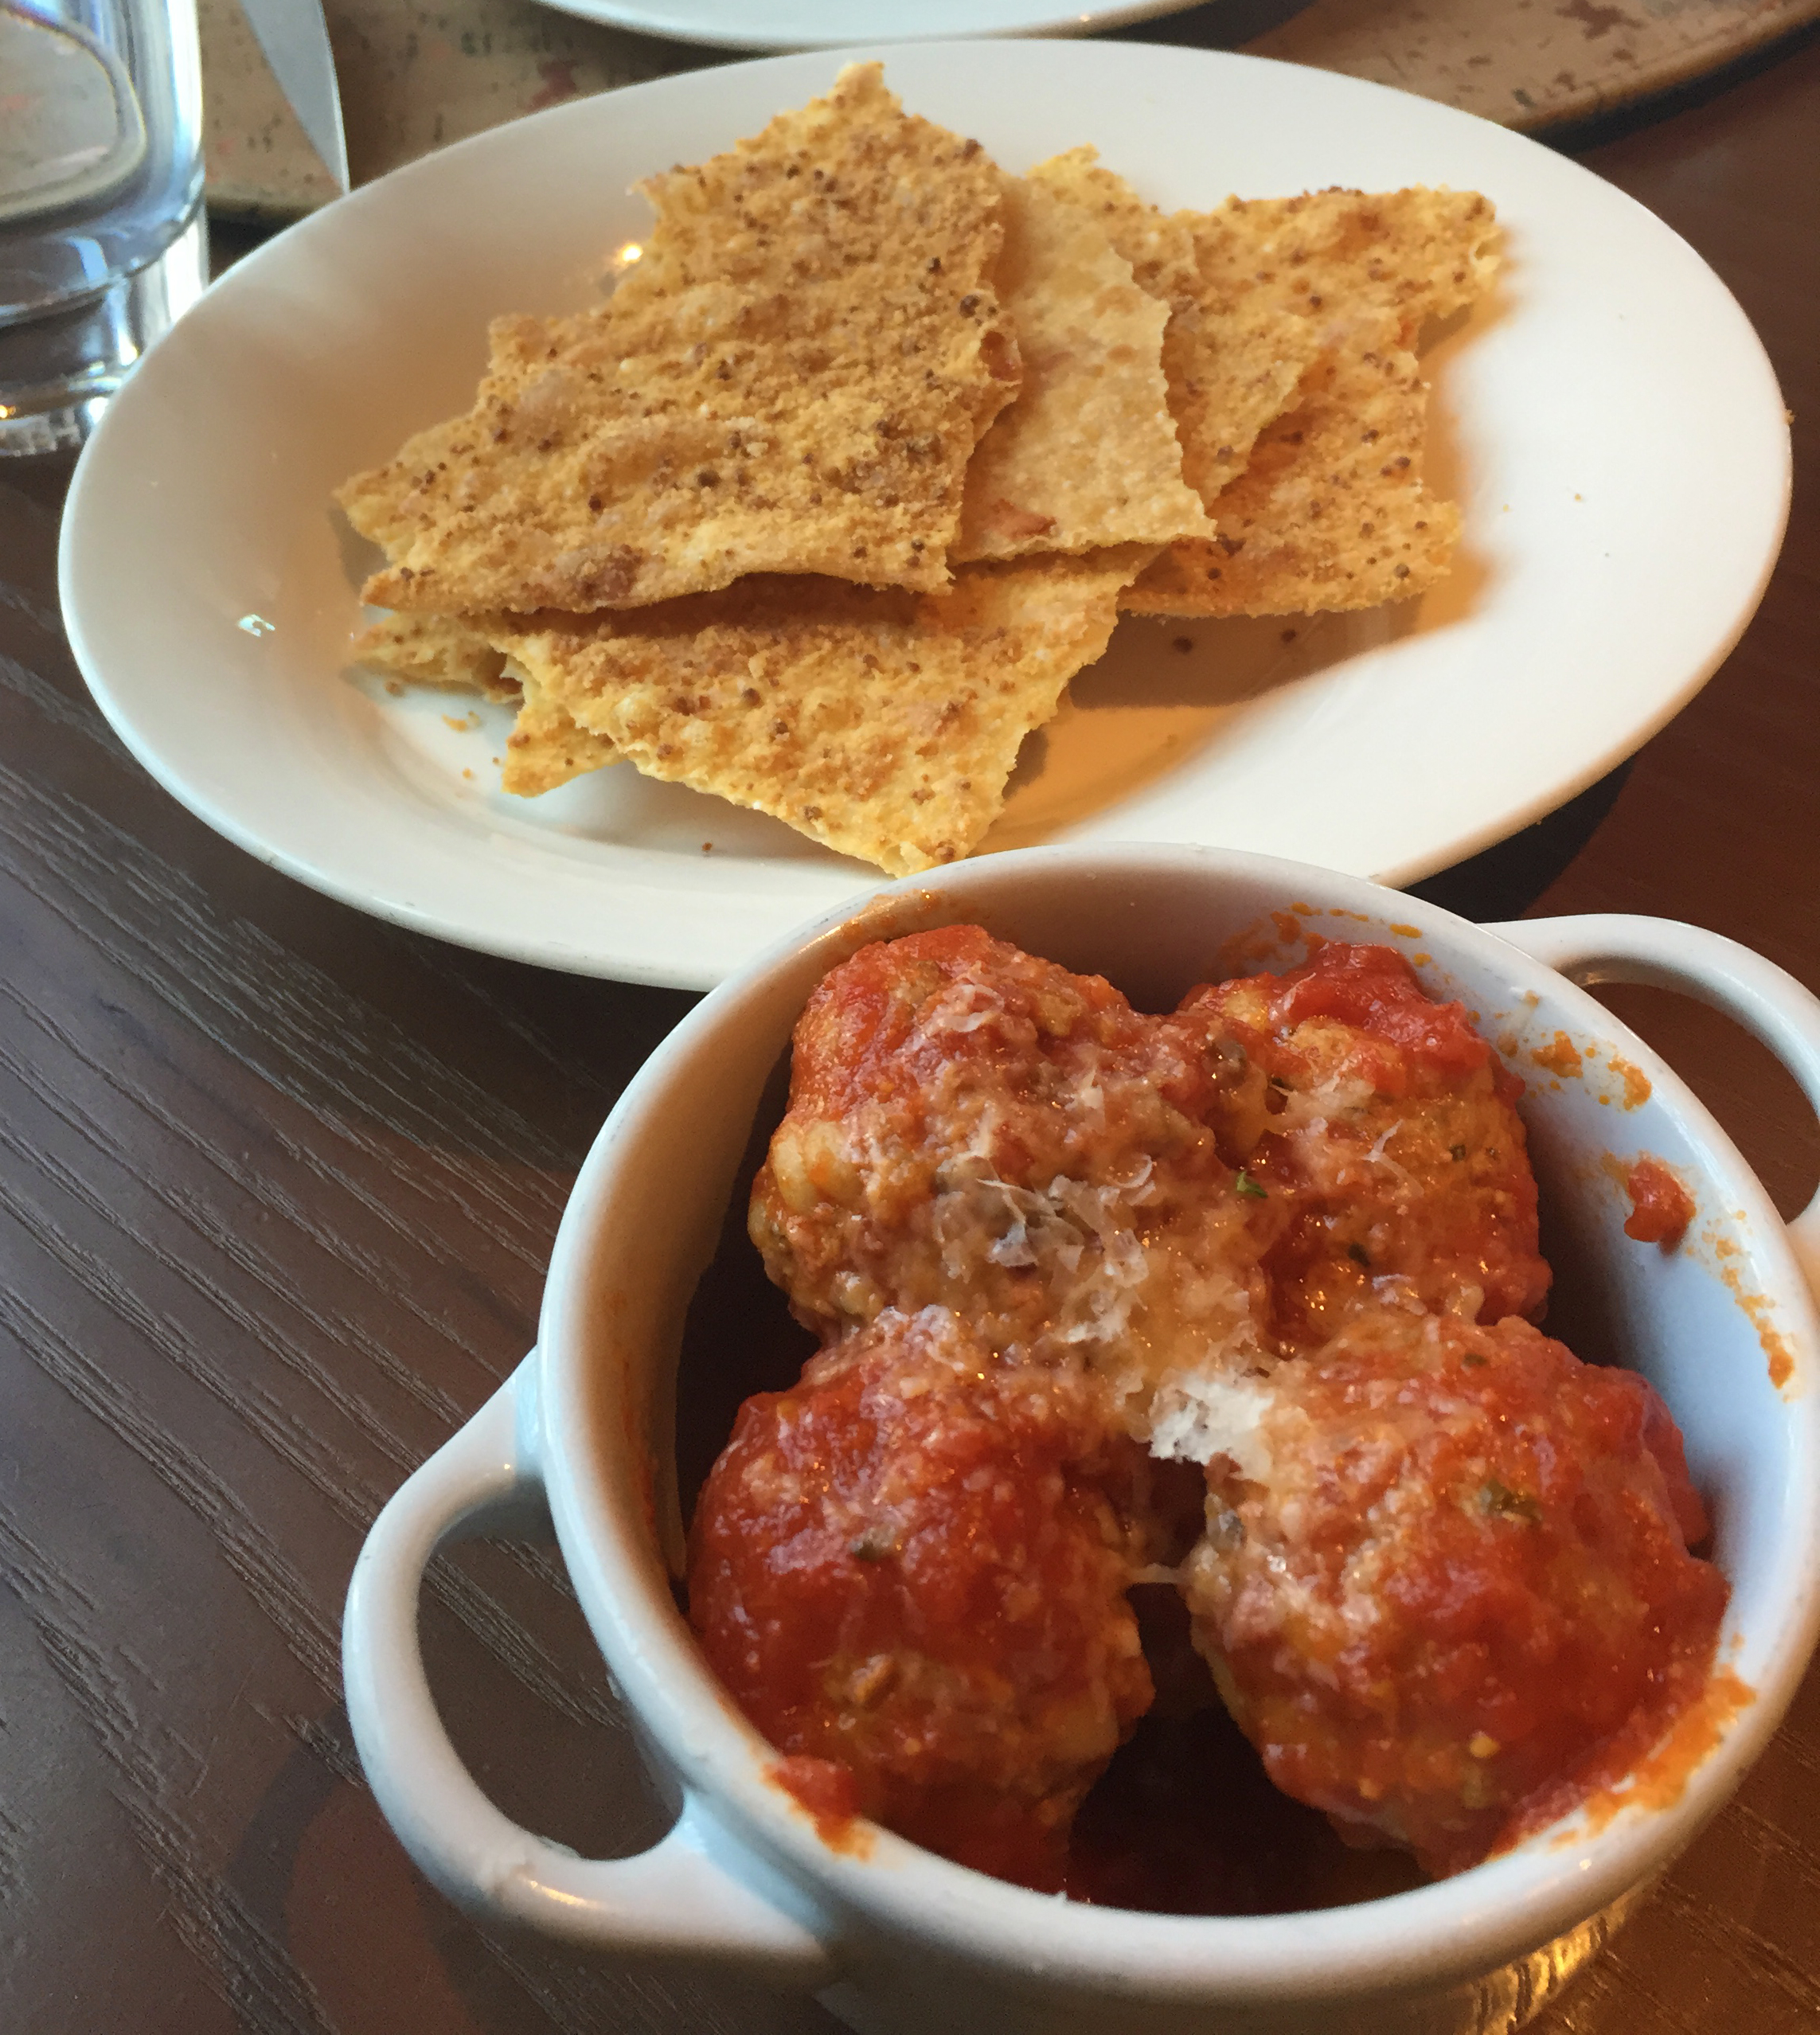 MEAT - Orzo Meatballs: meatballs with parmesan pomodoro